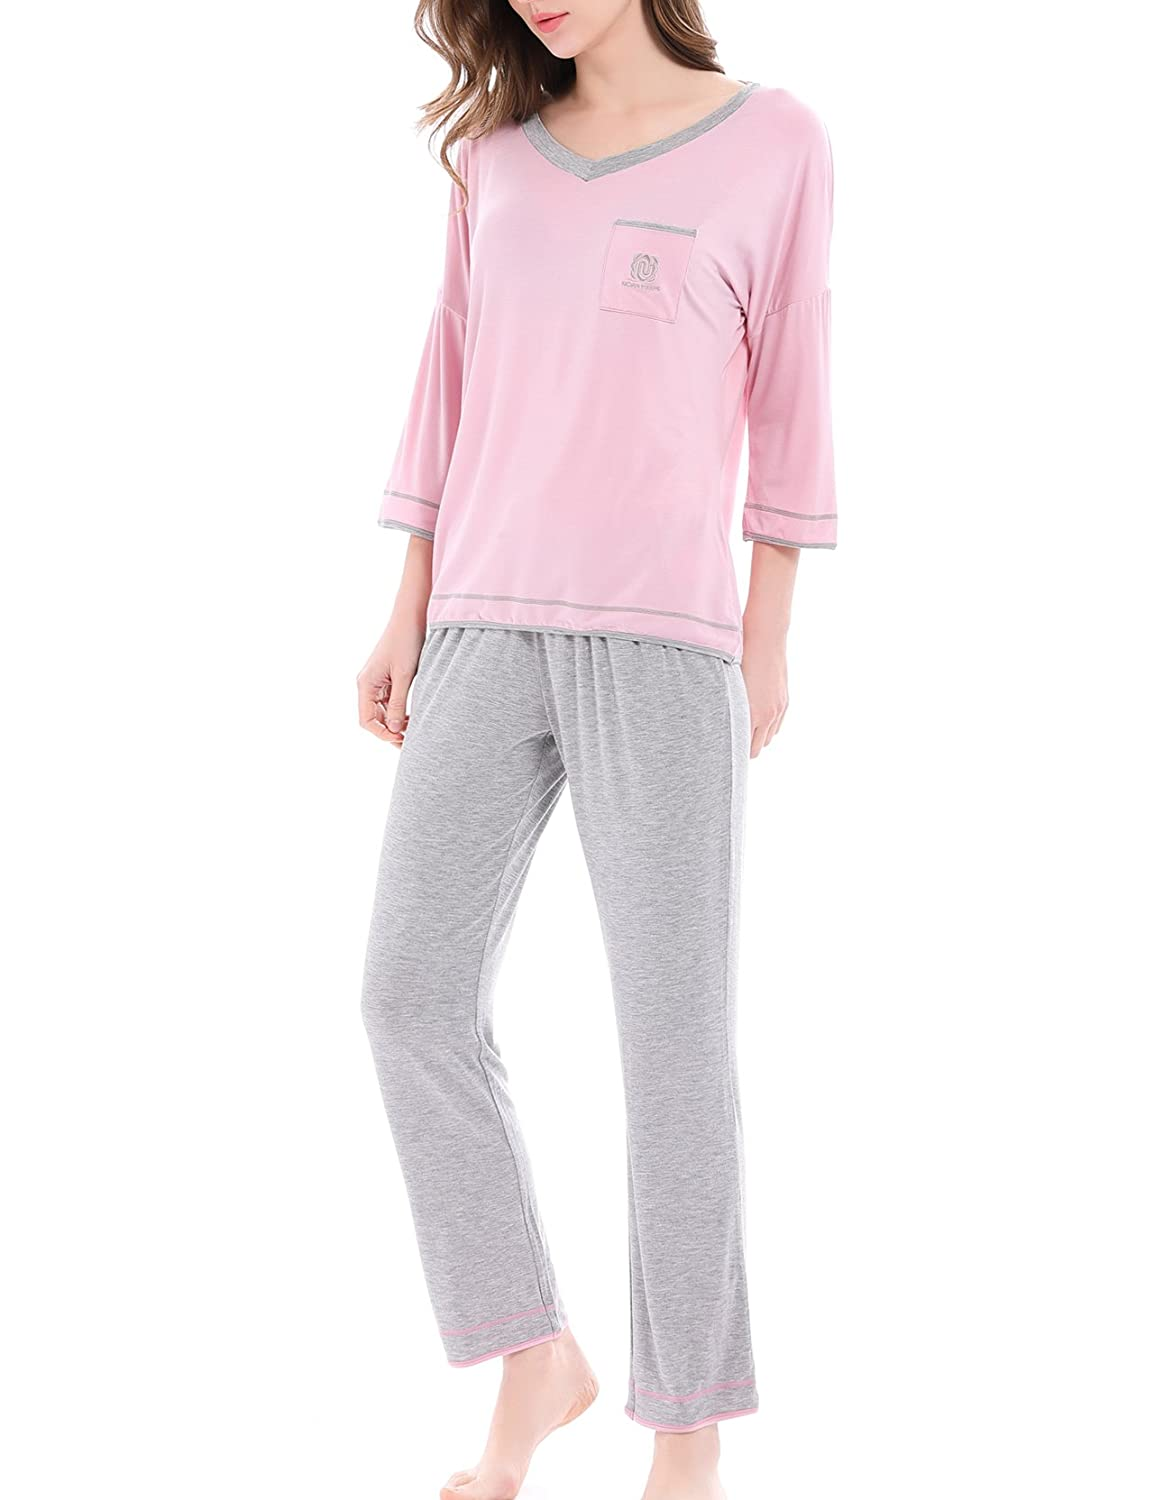 NORA TWIPS Women's Sleepwear Short Sleeves Pajama Set with Pants by Nara Twips(XS-XL) *OY005